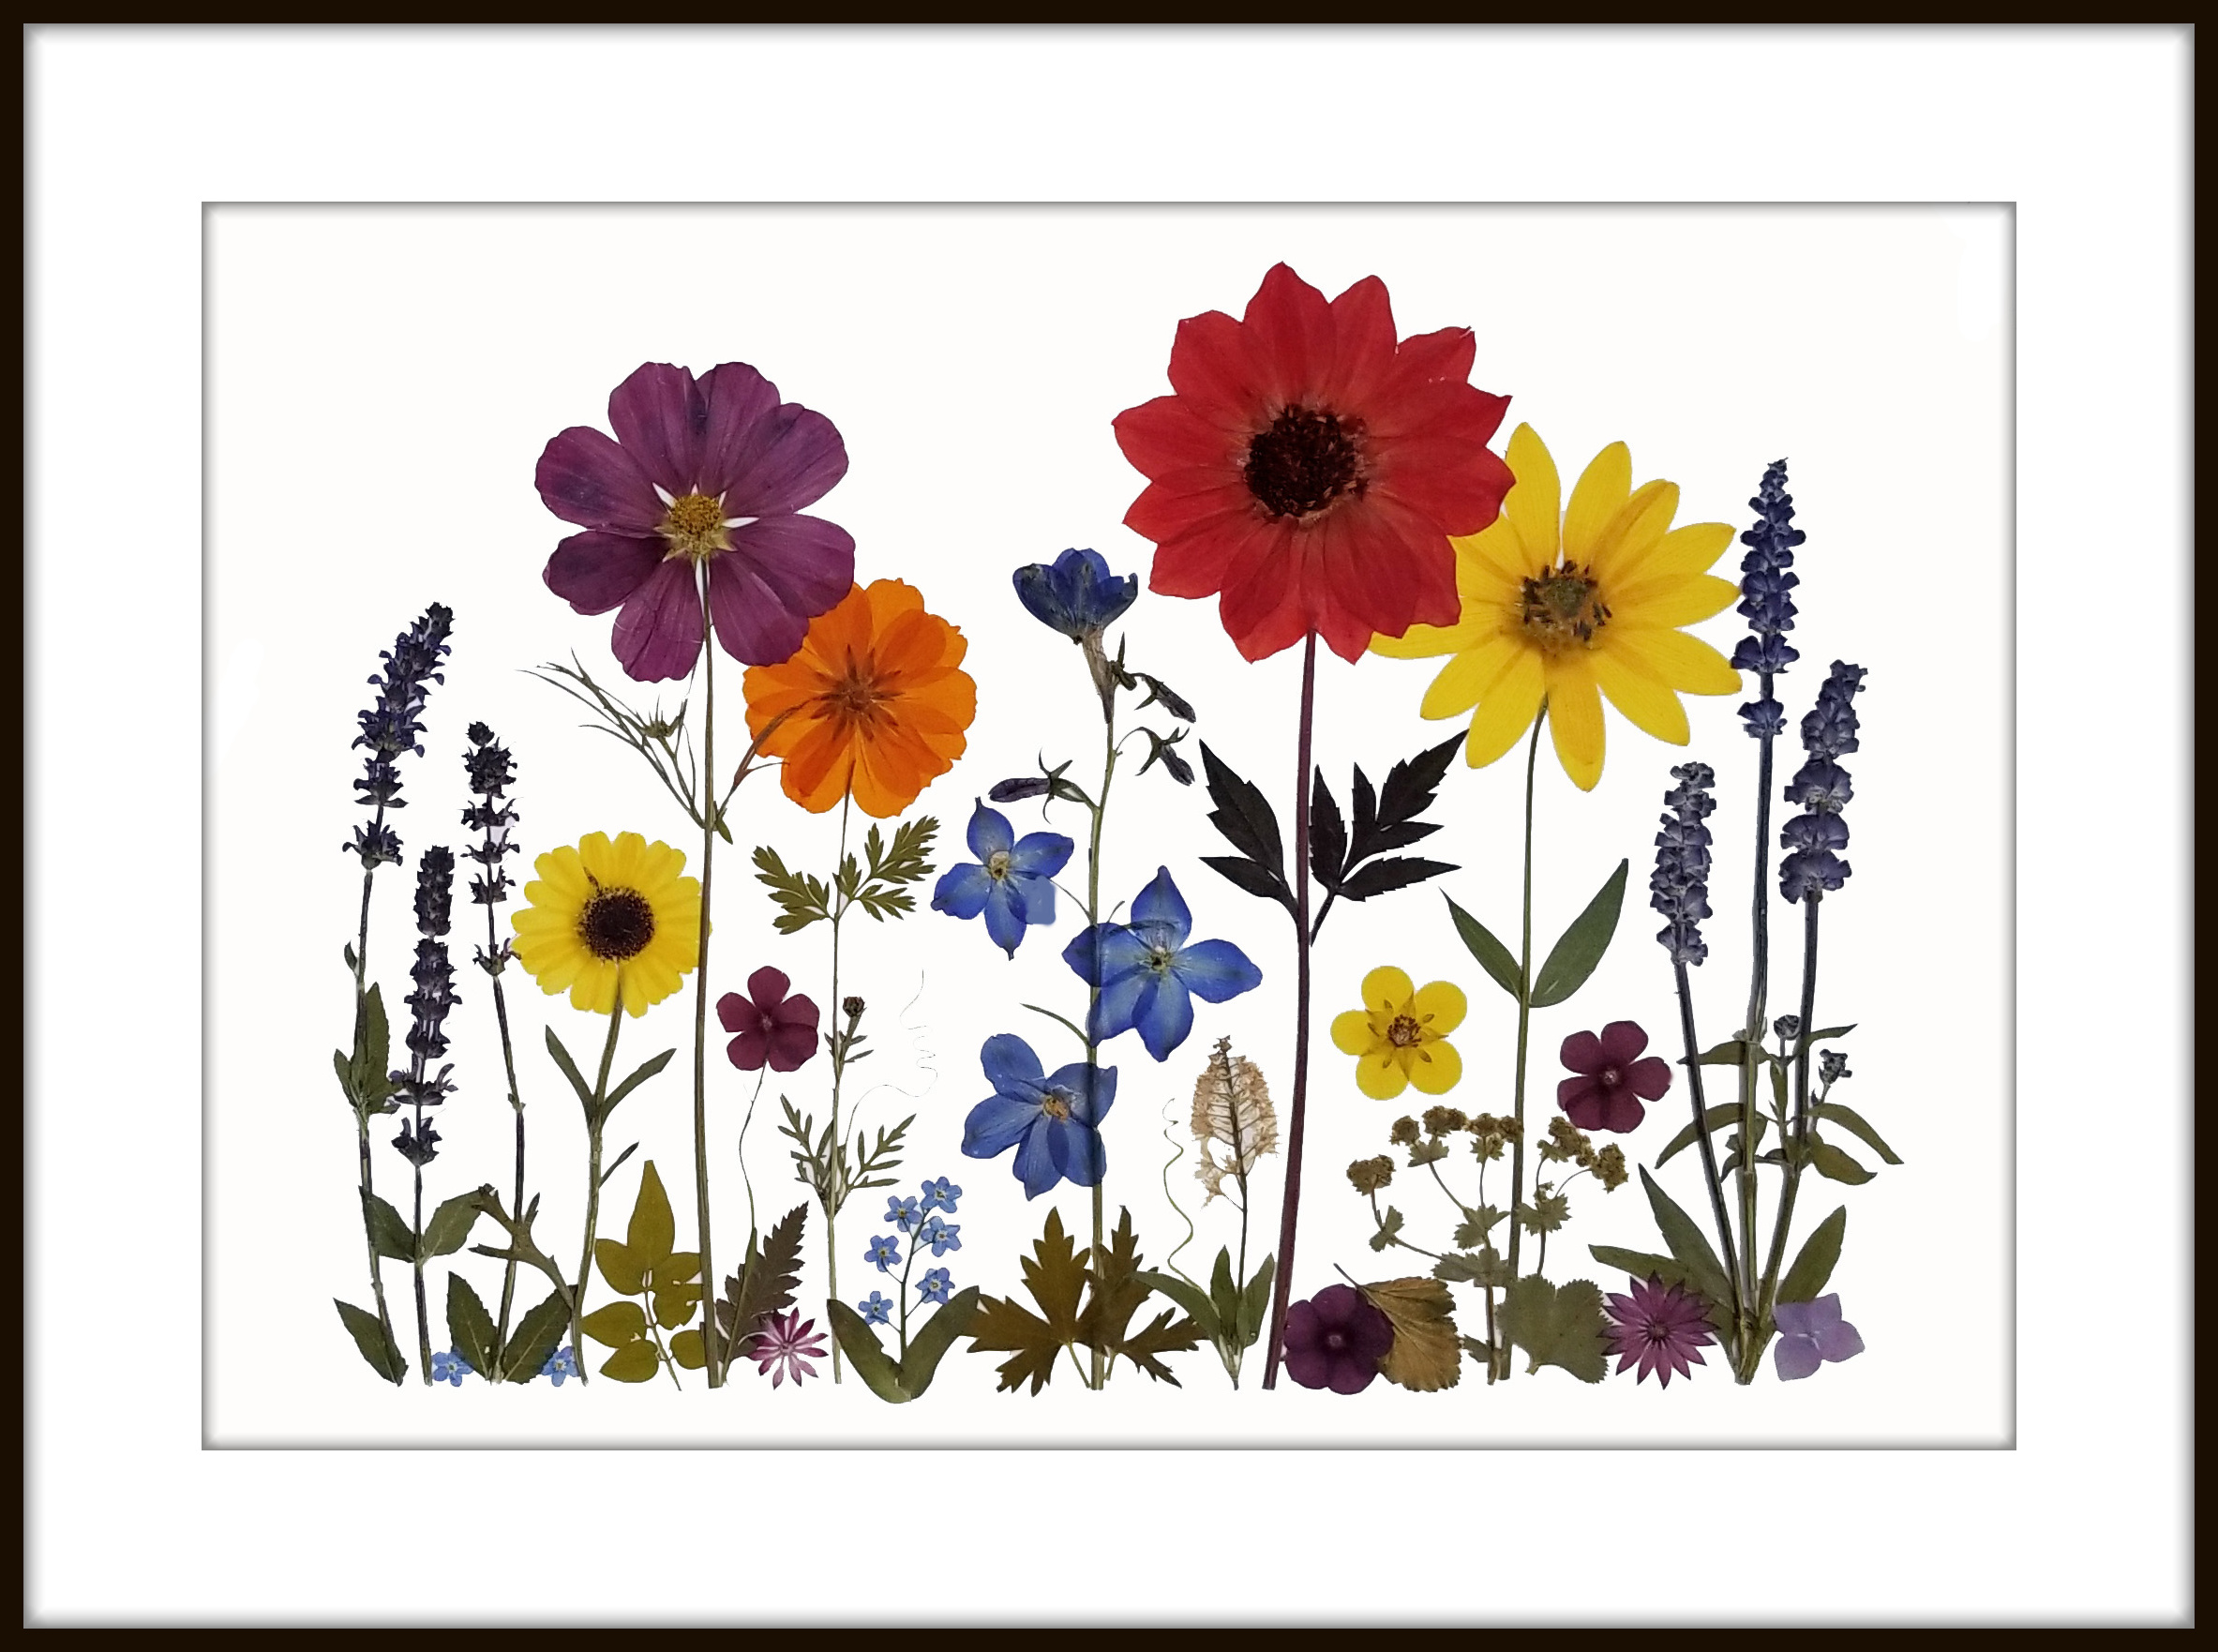 Comprised clipart spring flowers.